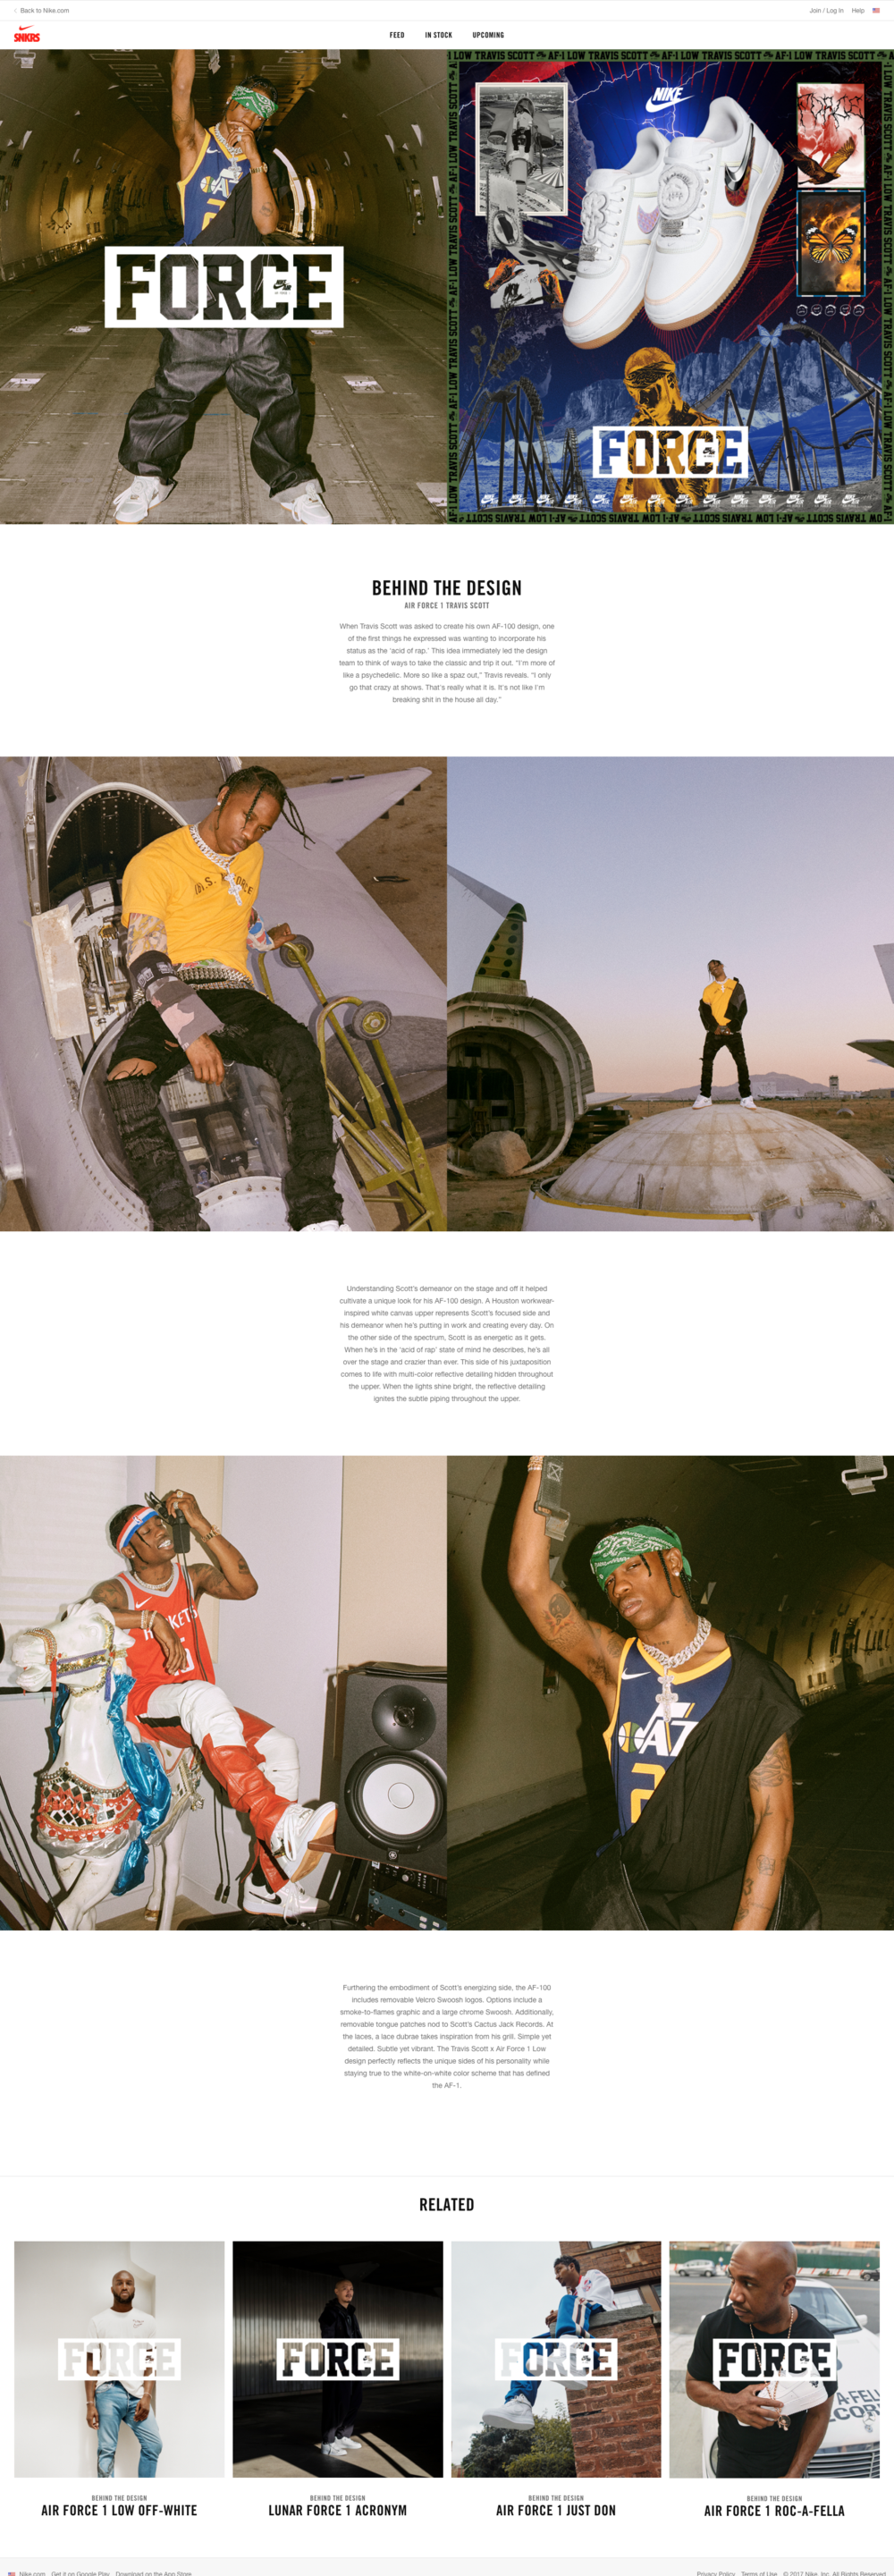 screencapture-nike-launch-t-behind-the-design-air-force-1-travis-scott-1510177022973.png